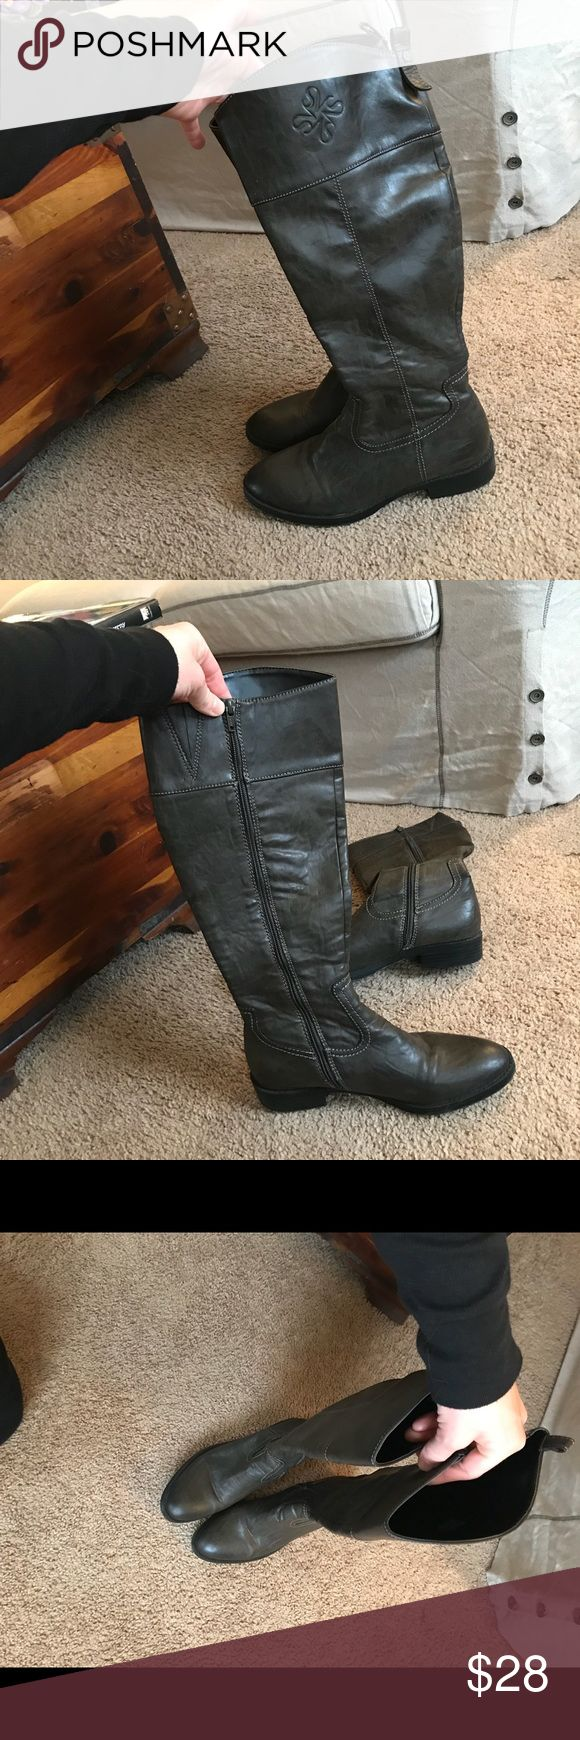 Simply Vera Wang boots size 7.5 Simply Vera Wang boots size 7.5. Great condition. They are a dark brownish/grey color. Simply Vera Vera Wang Shoes Combat & Moto Boots